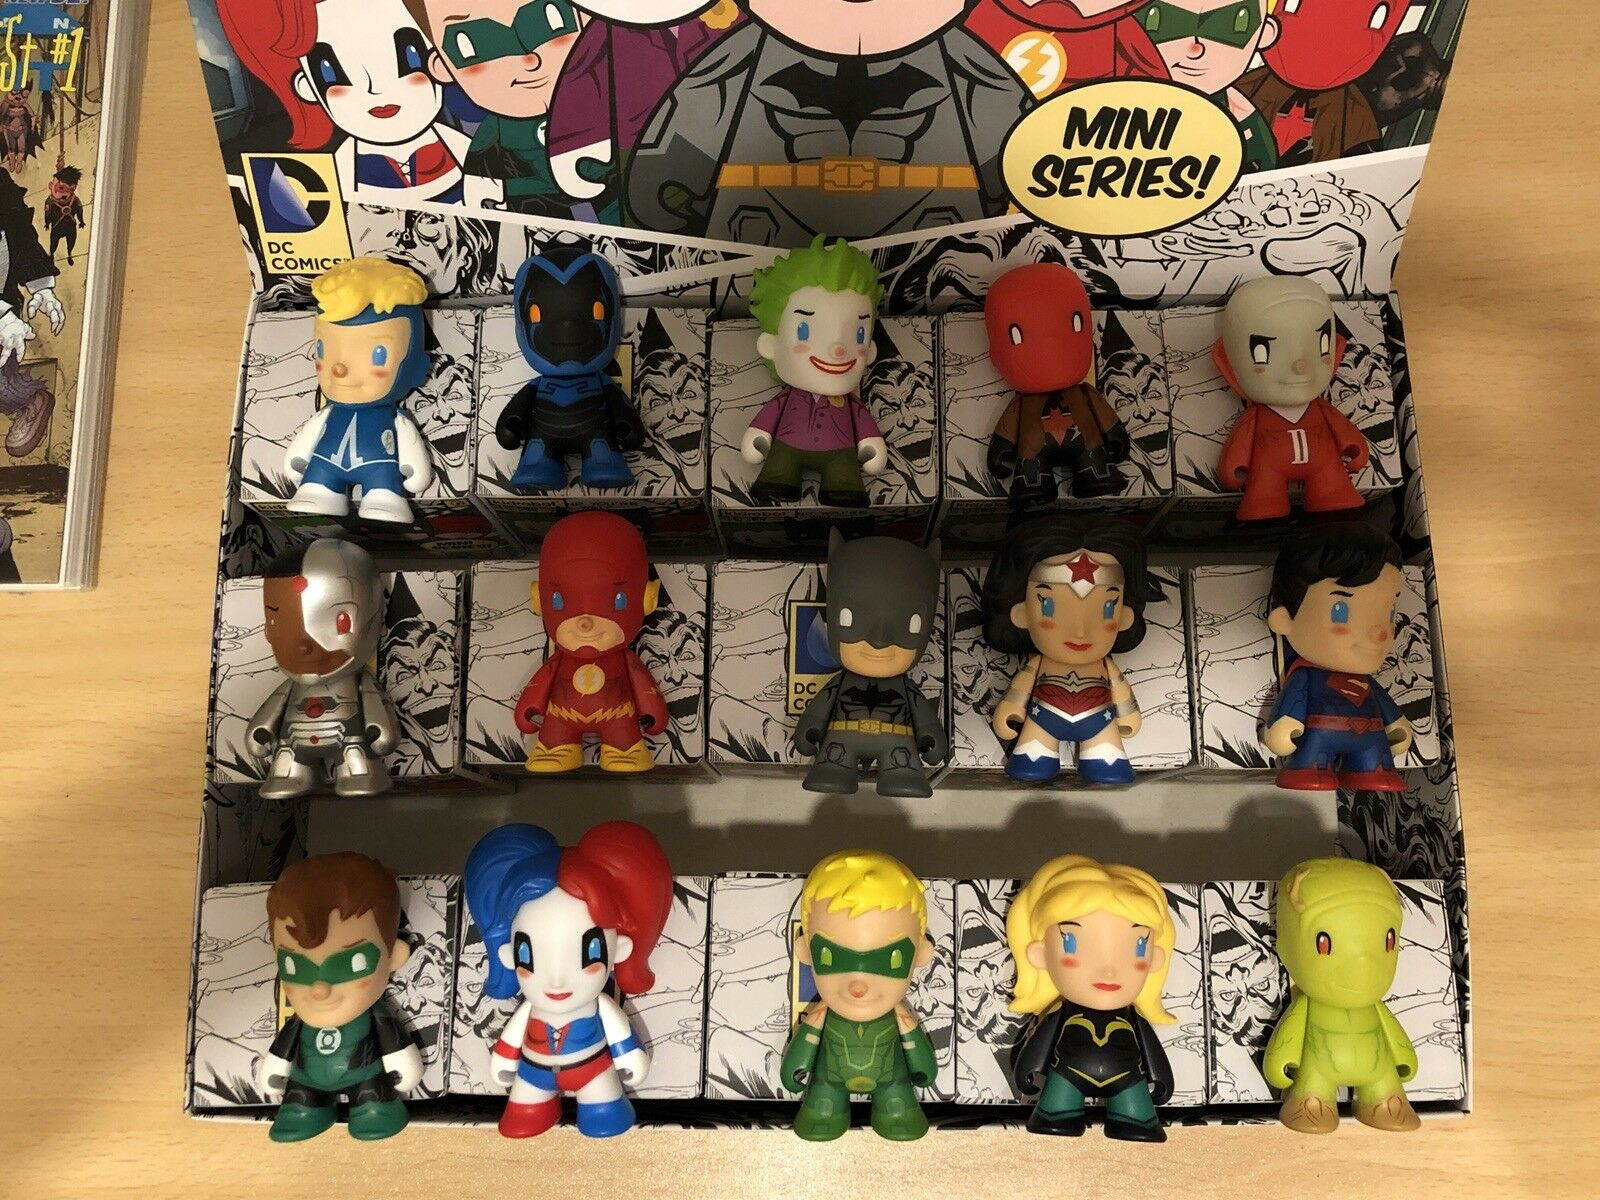 Kidrobot DC Comics - 3  Mini Series - Blind Box Collectibles - Full Set of 15